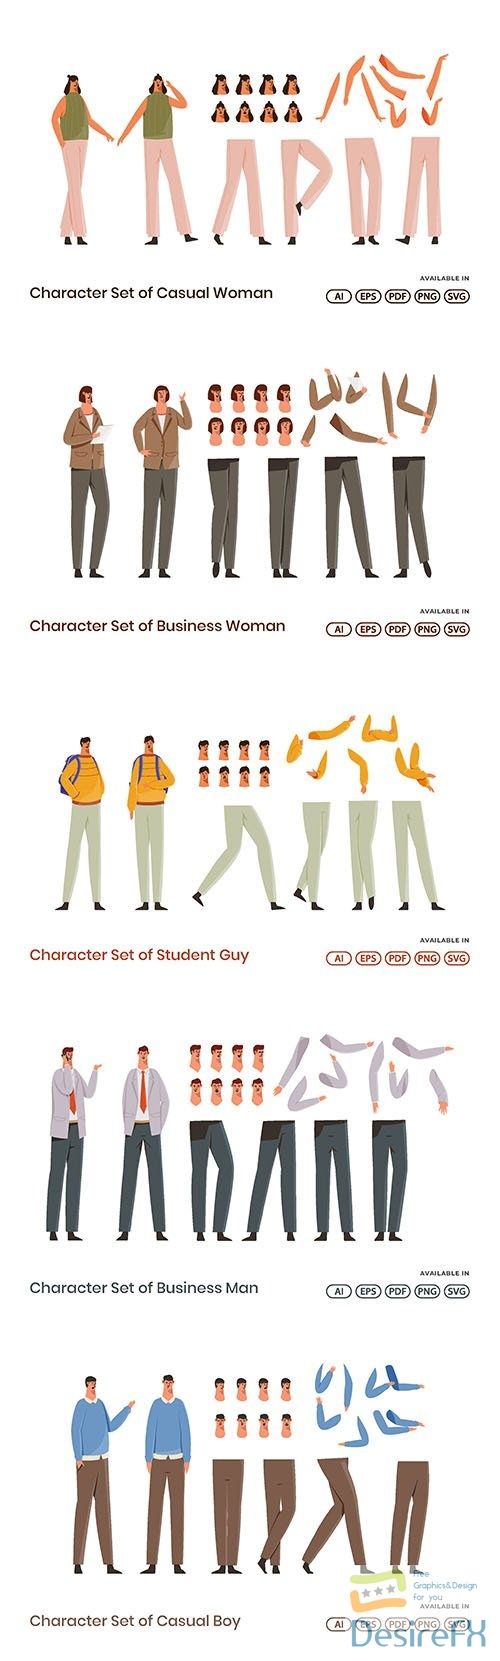 Character Set of Casual man and women